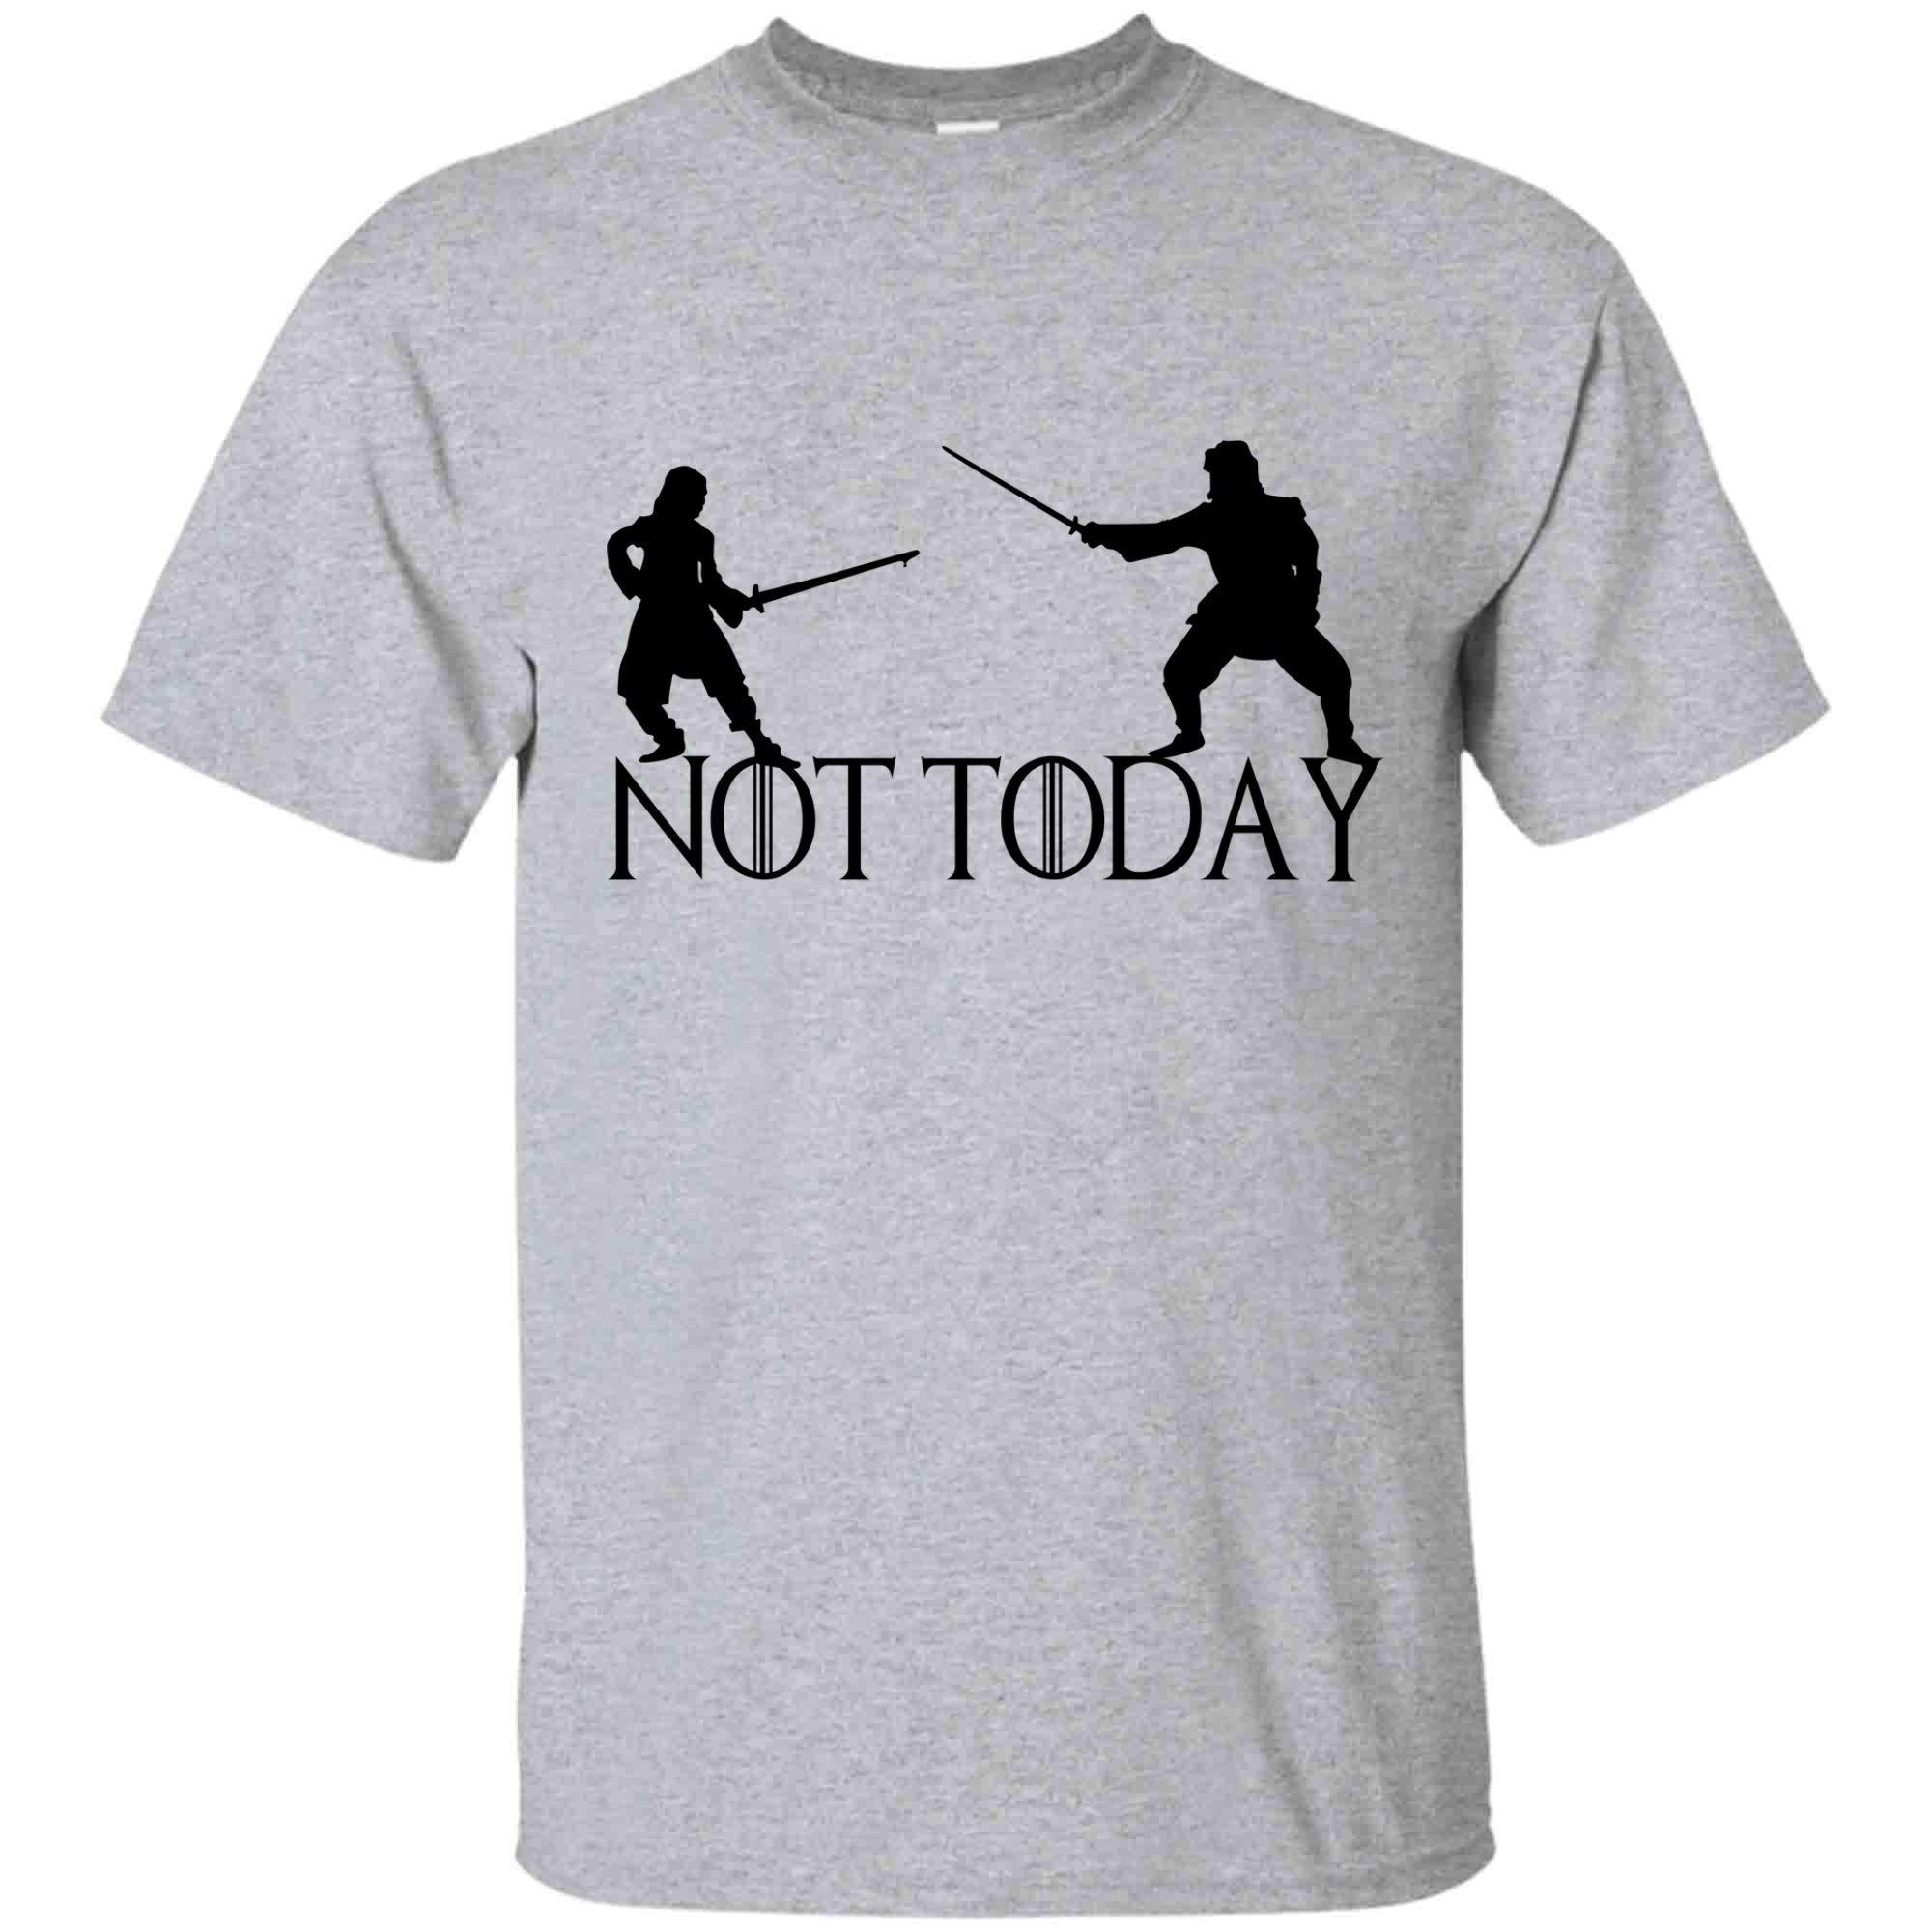 Game Of Thrones Shirt Not Today Shirt Arya Stark And Her Tea T Shirt For And